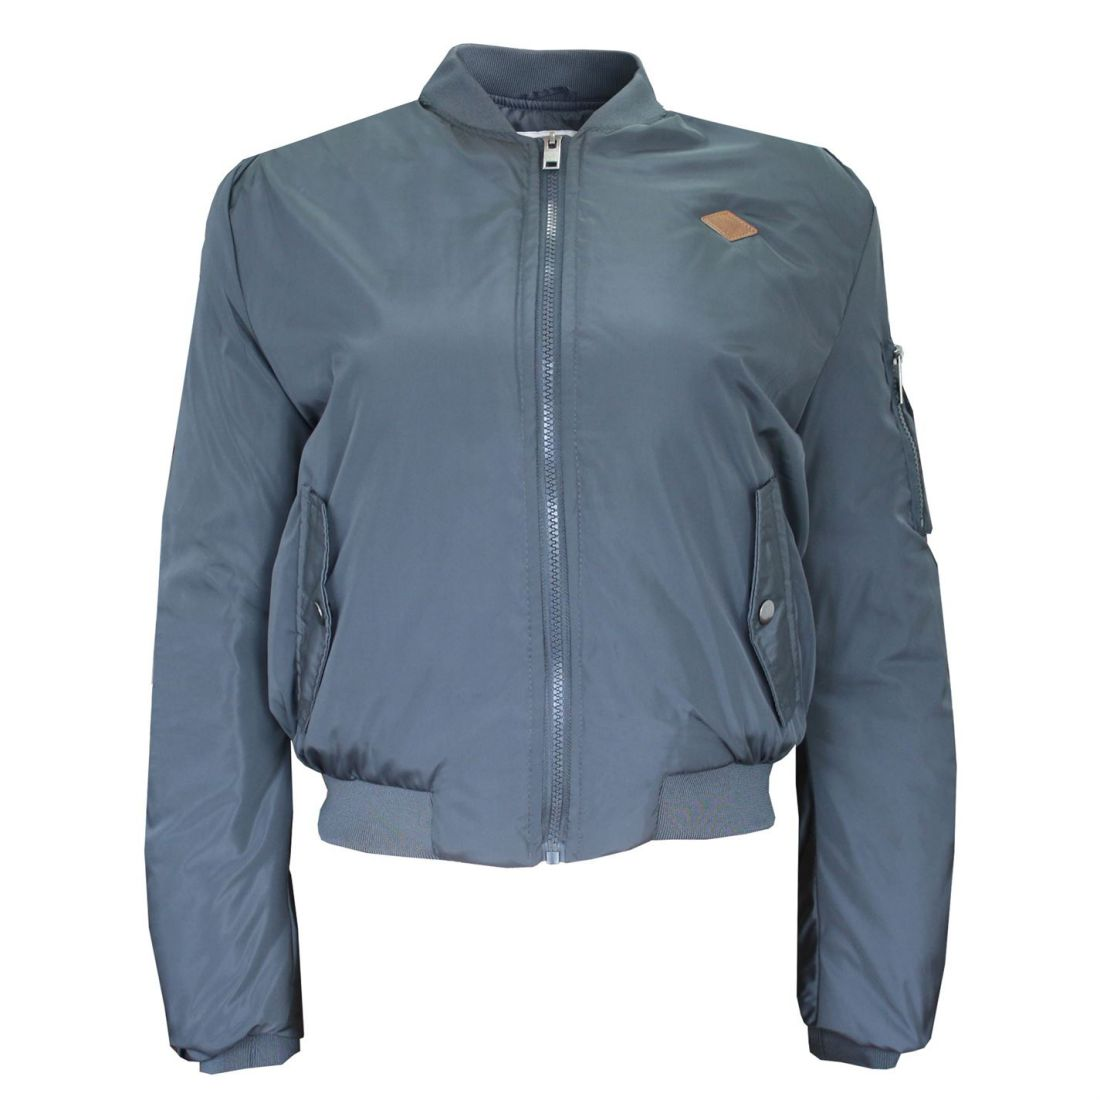 f72e9f311 Details about Lee Cooper Bomber Jacket Ladies - Midweight Coat Top Zip  Zipped